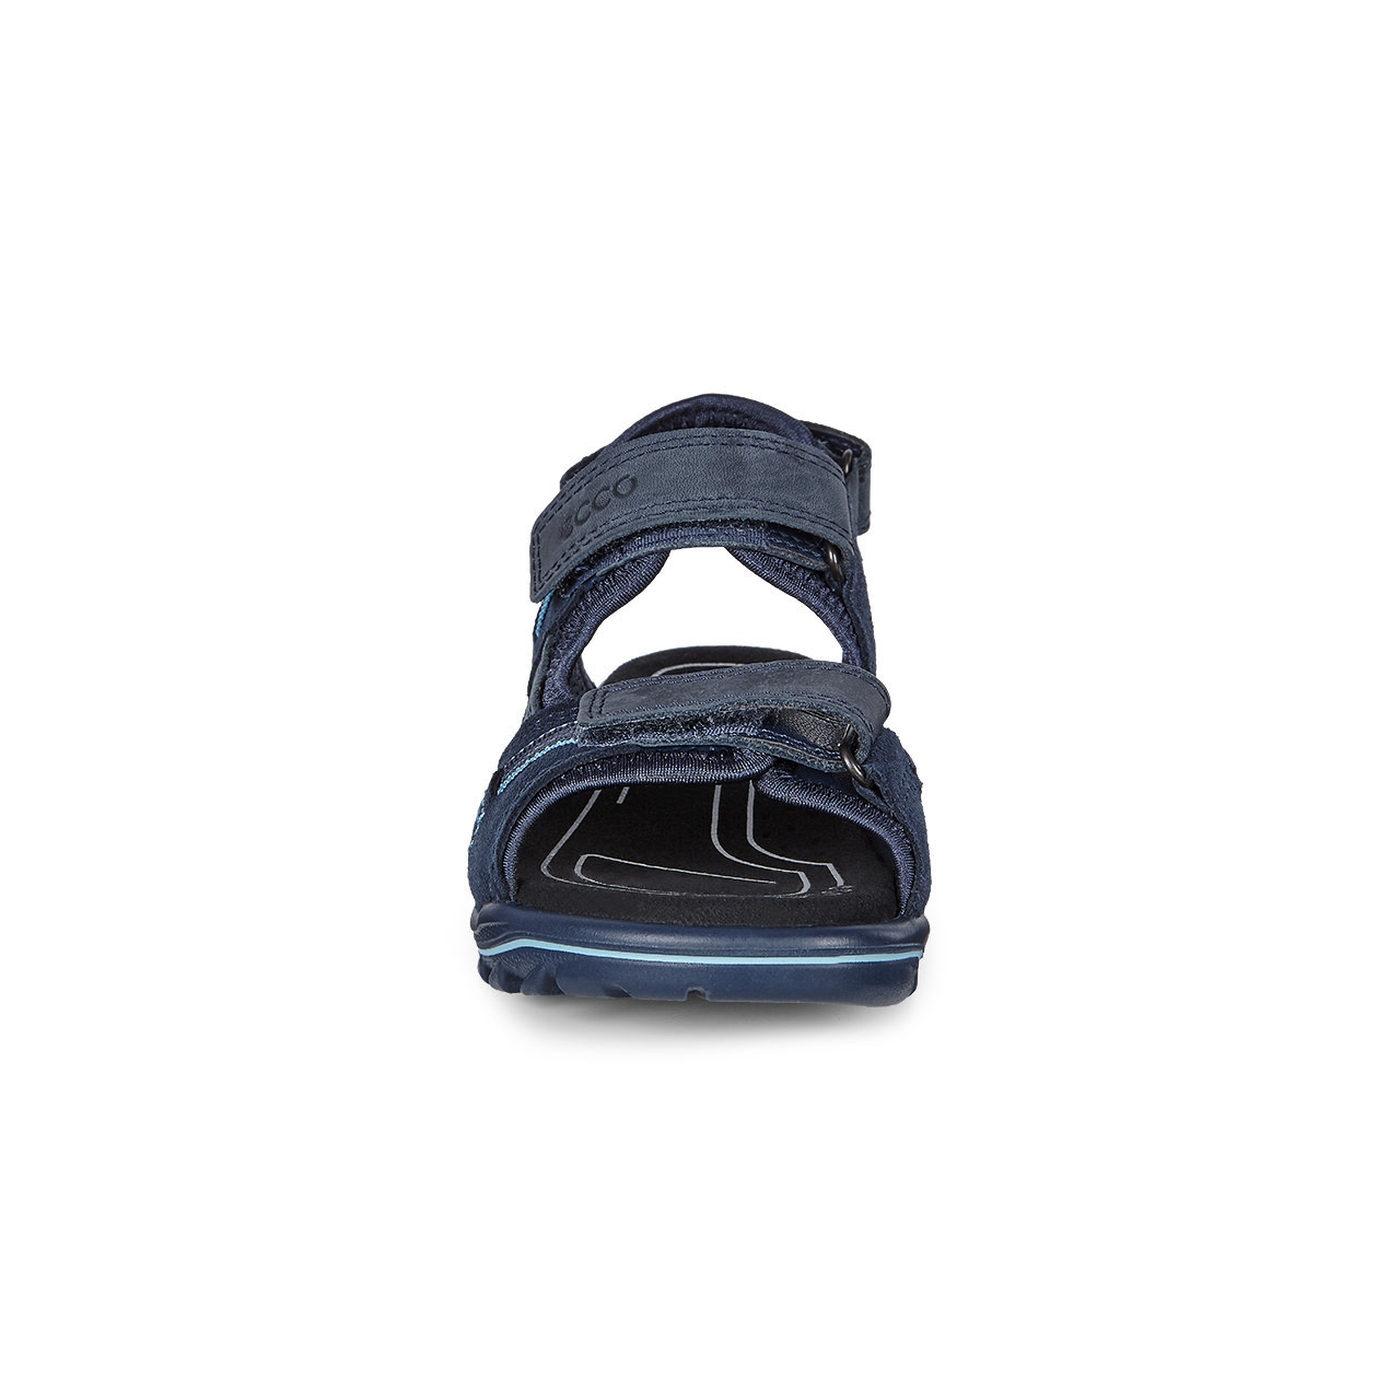 ECCO Urban Safari Sandal